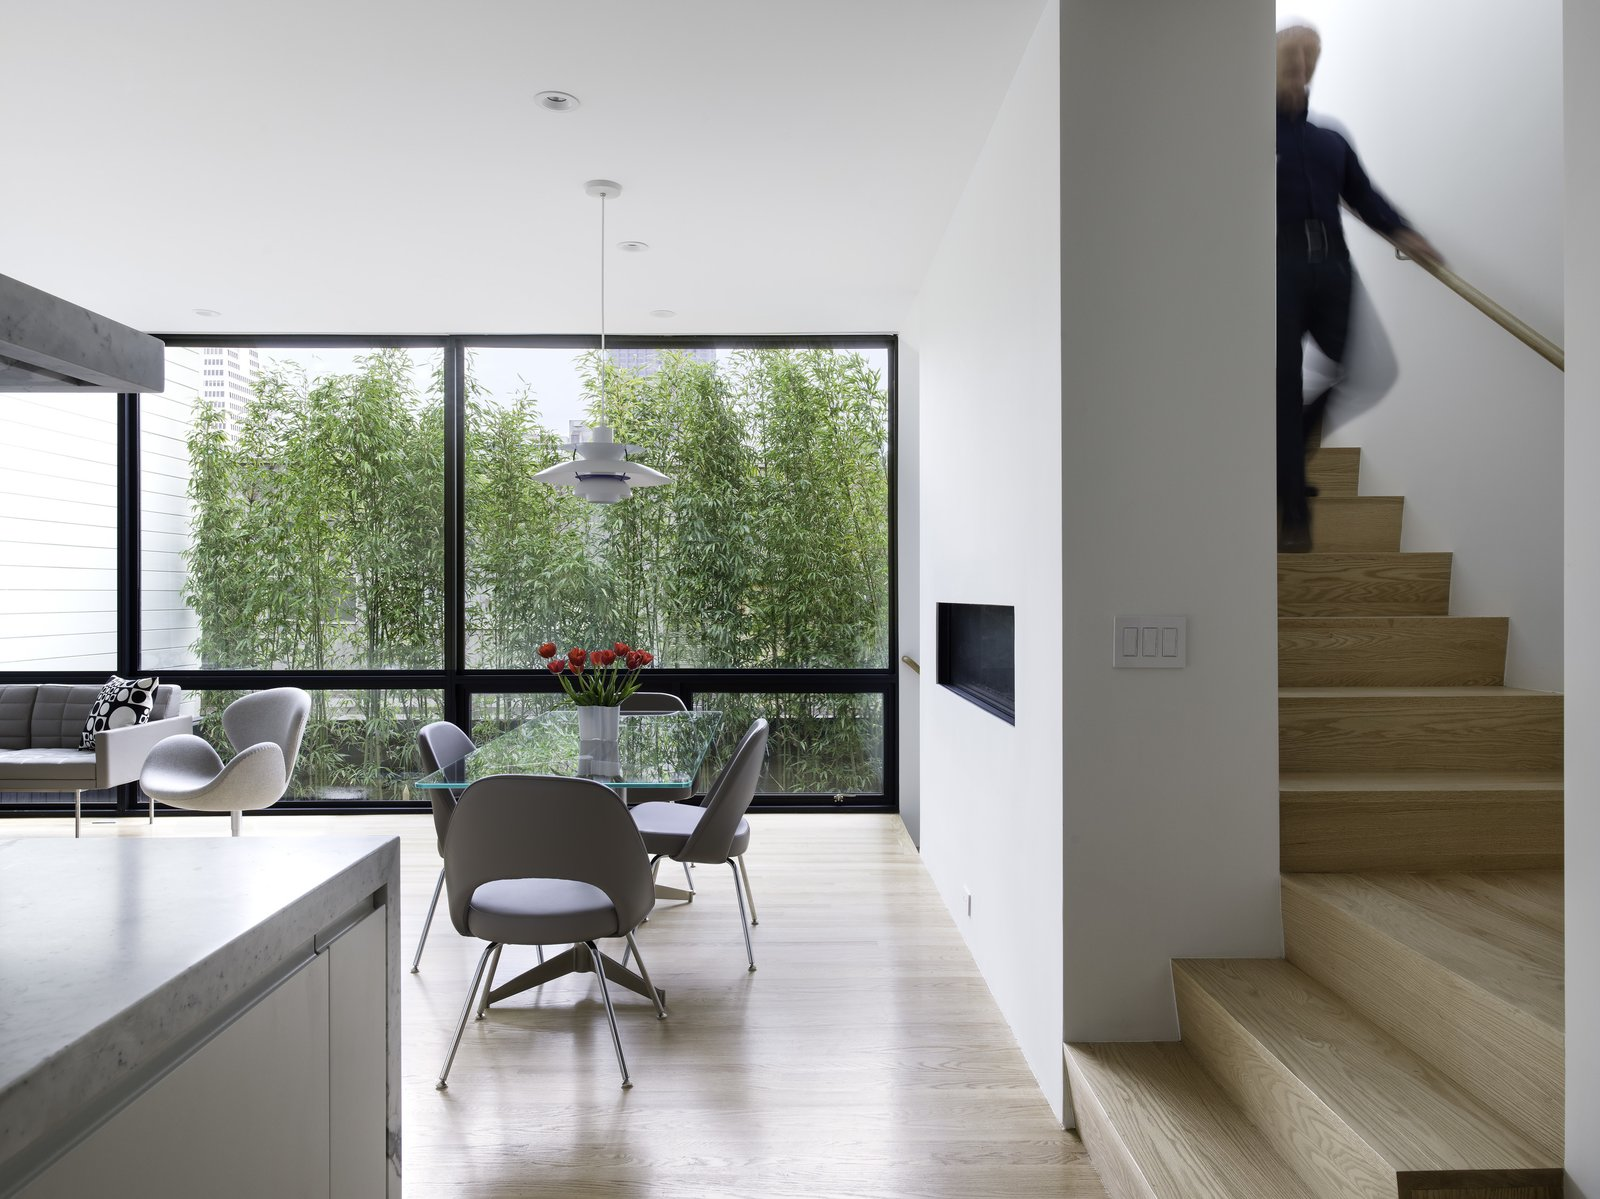 View of the Dining Room from the Kitchen. The Stairway, leading up to the Sun Room and down to the Master Bedroom Level (beyond), wraps around the Fireplace Wall.  Telegraph Hill Periscope by Samaha+Hart Architecture